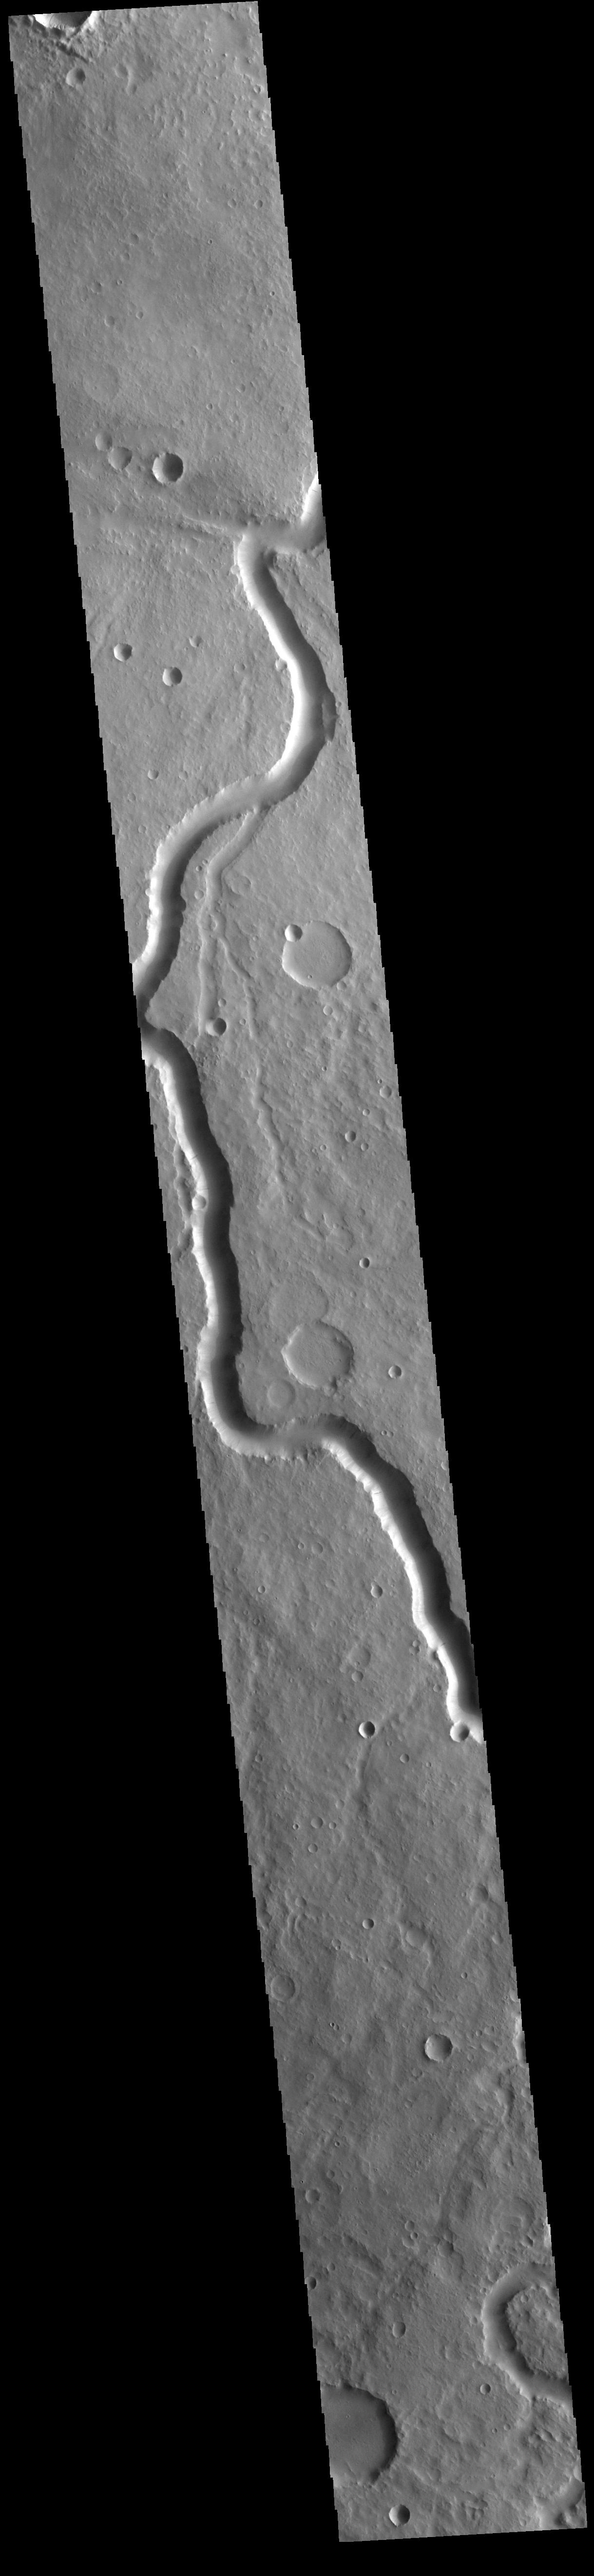 This image from NASAs Mars Odyssey shows a section of Scamander Vallis. Scamander Vallis is located in northern Terra Sabaea.